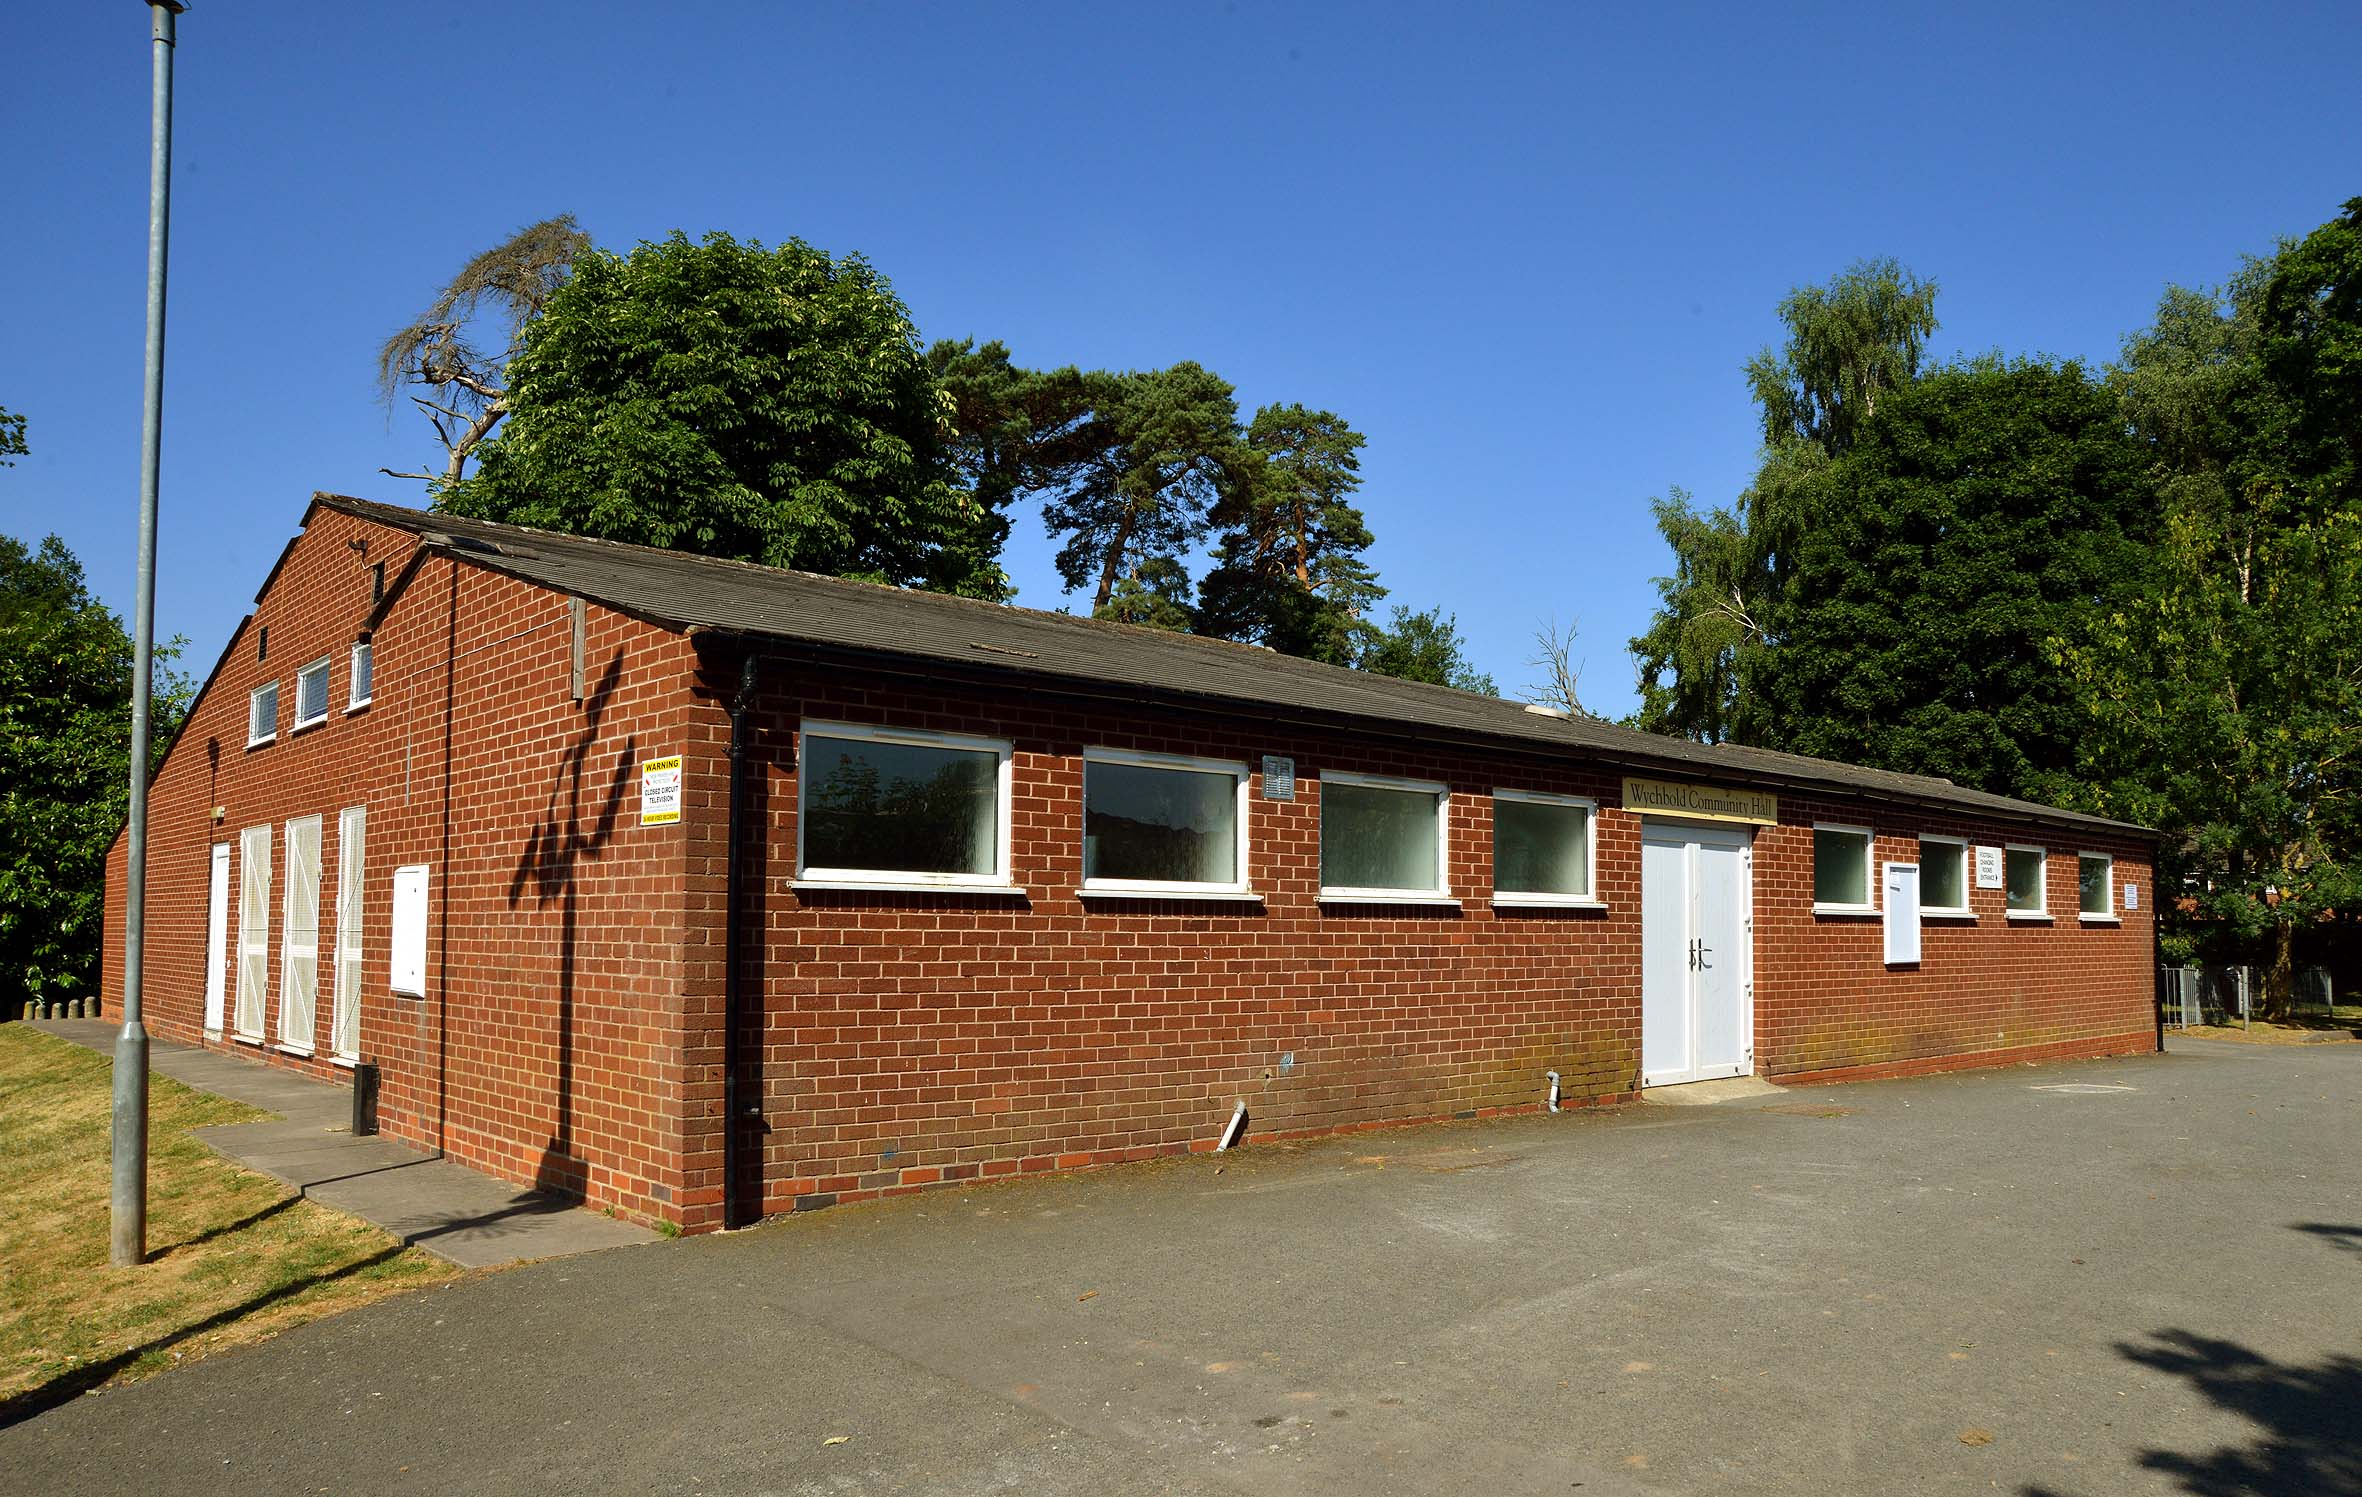 COUNCIL: Wychbold Village Hall, home of Dodderhill Parish Council